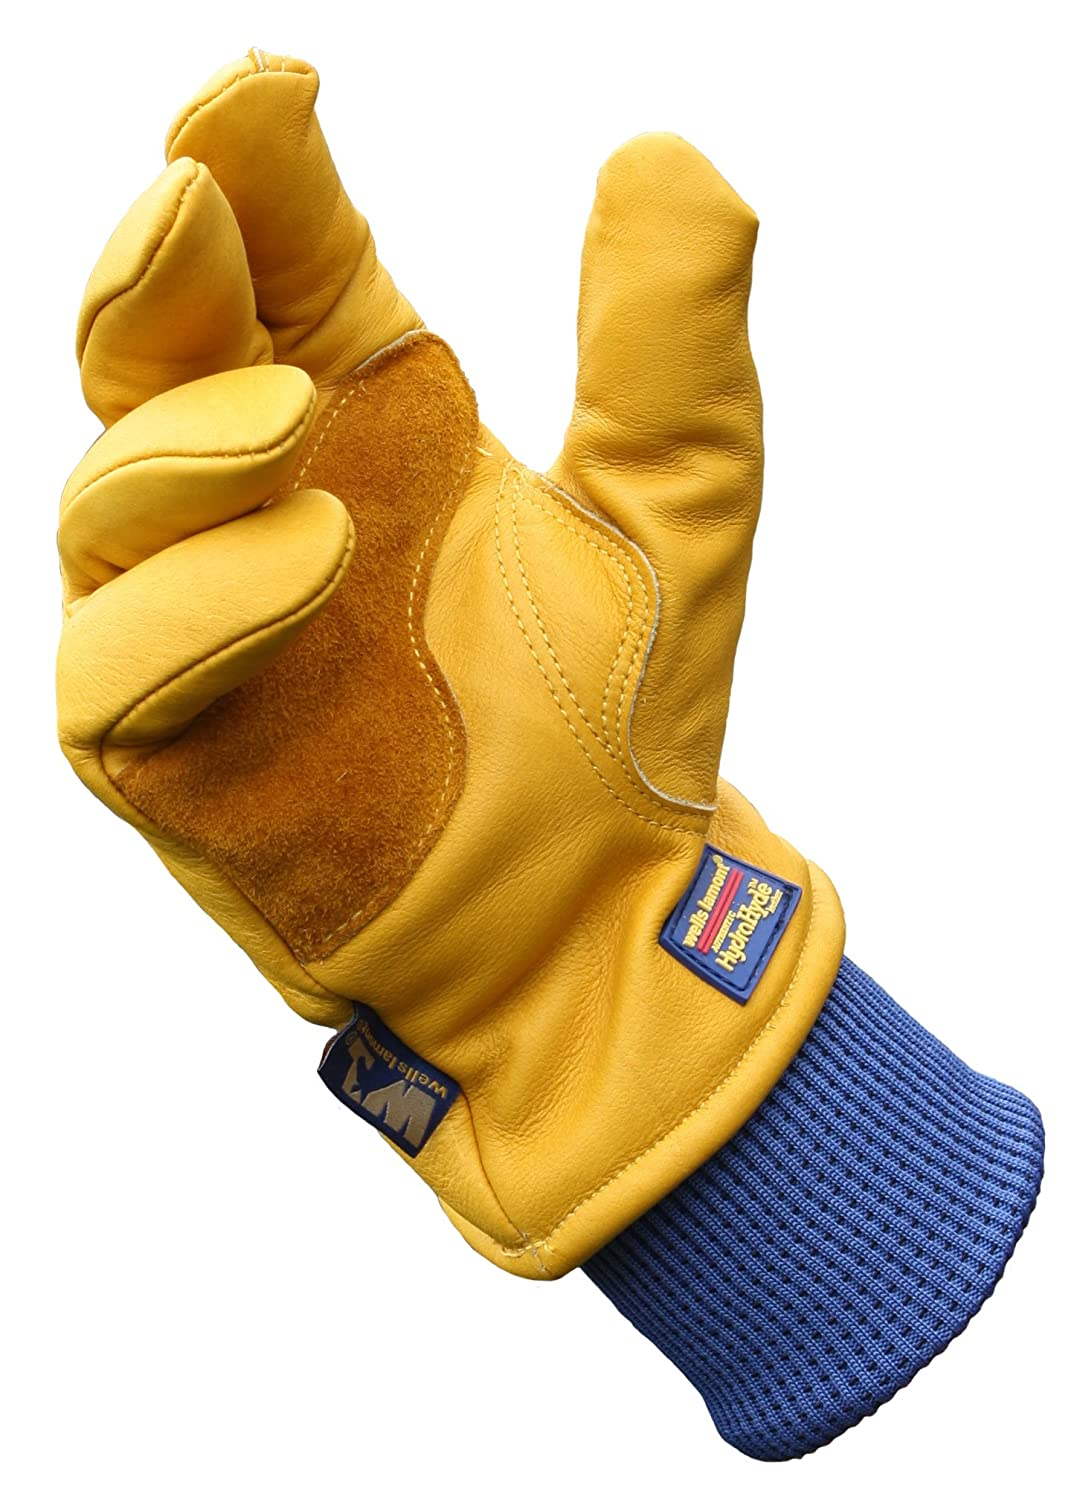 Driving gloves yahoo answers - Wells Lamont Water Resistant Very Warm Leather Work Gloves Thinsulate Insulated Grain Cowhide Medium 1202m Amazon Com